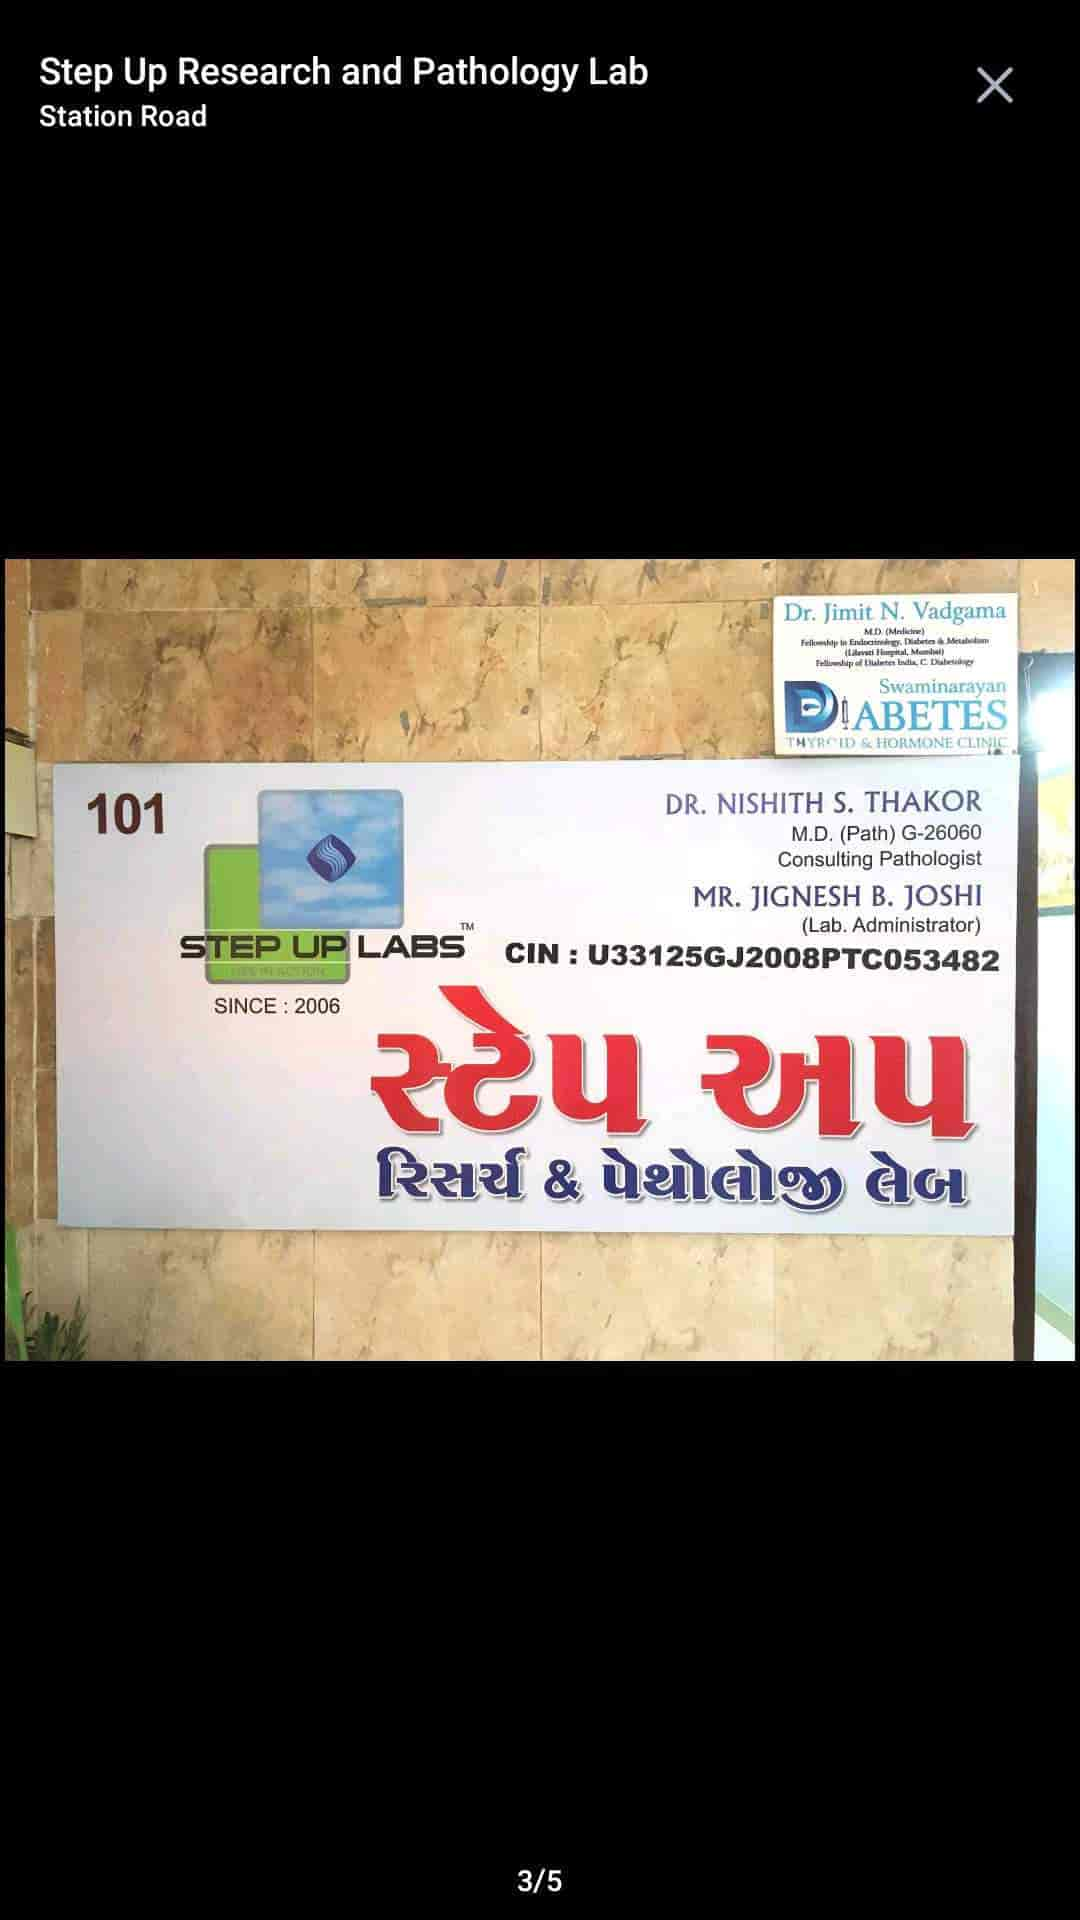 Step Up Research and Pathology Lab Photos, Station Road, Surat